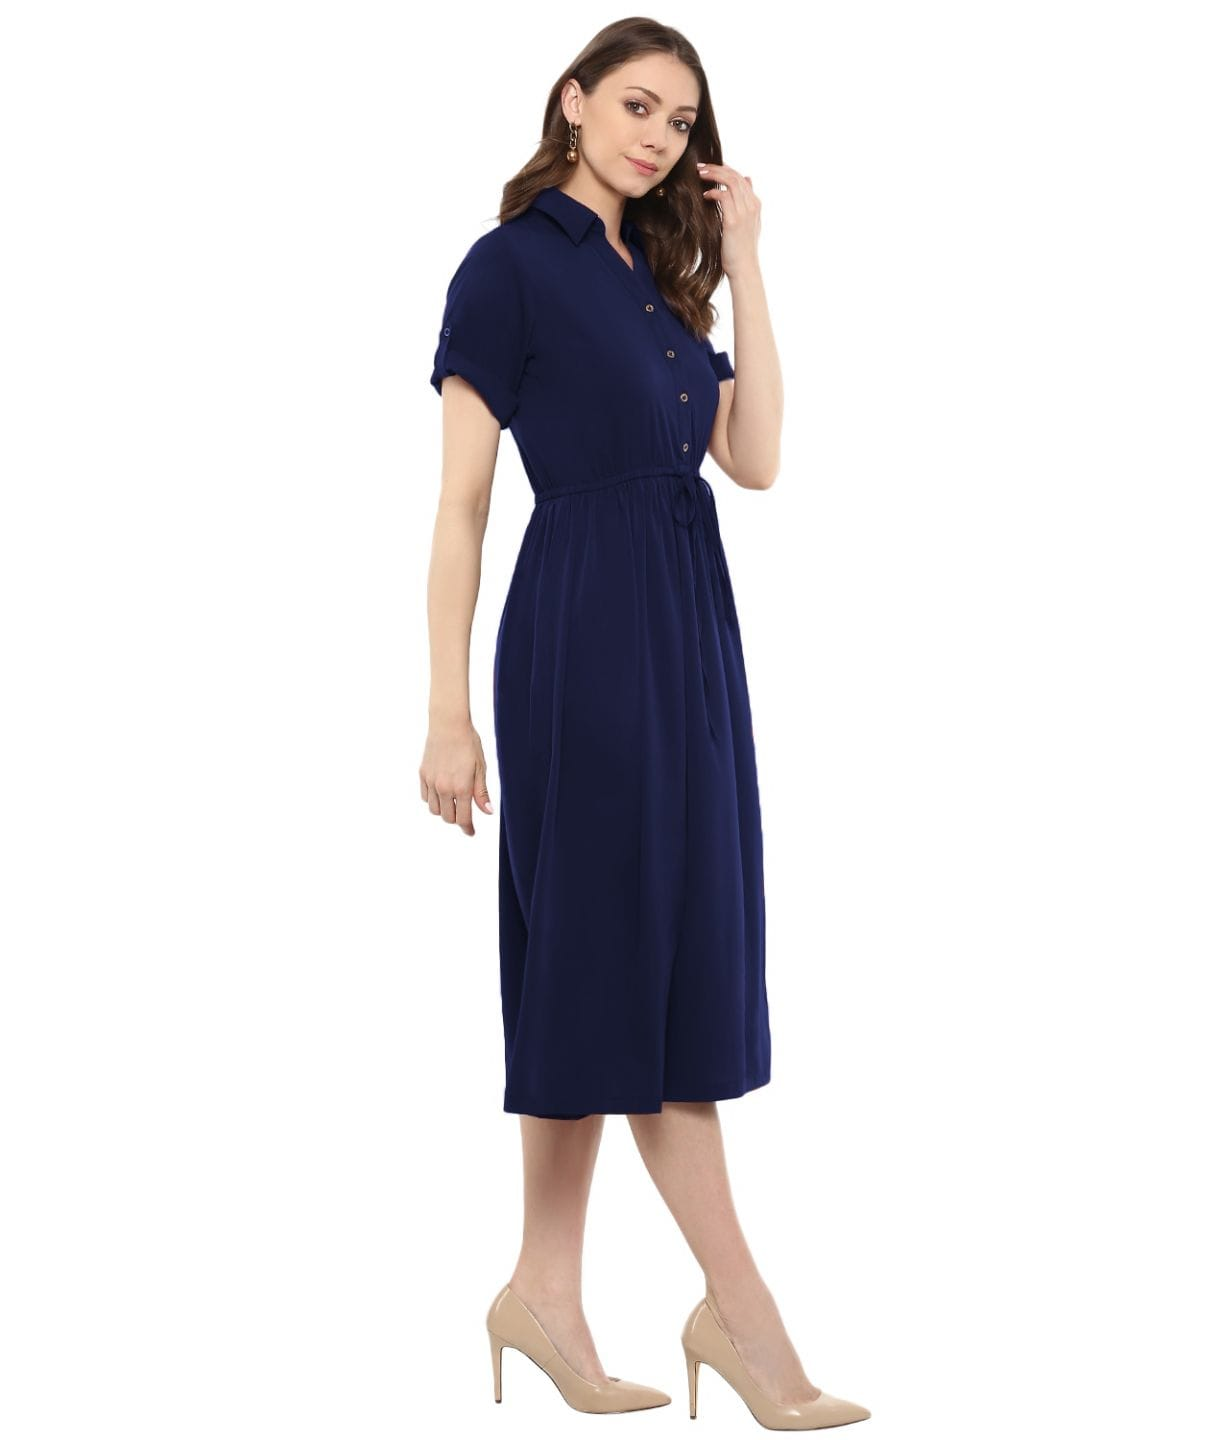 Uptownie Plus Navy Blue Solid Crepe Collar 3/4th Sleeves Skater Dress